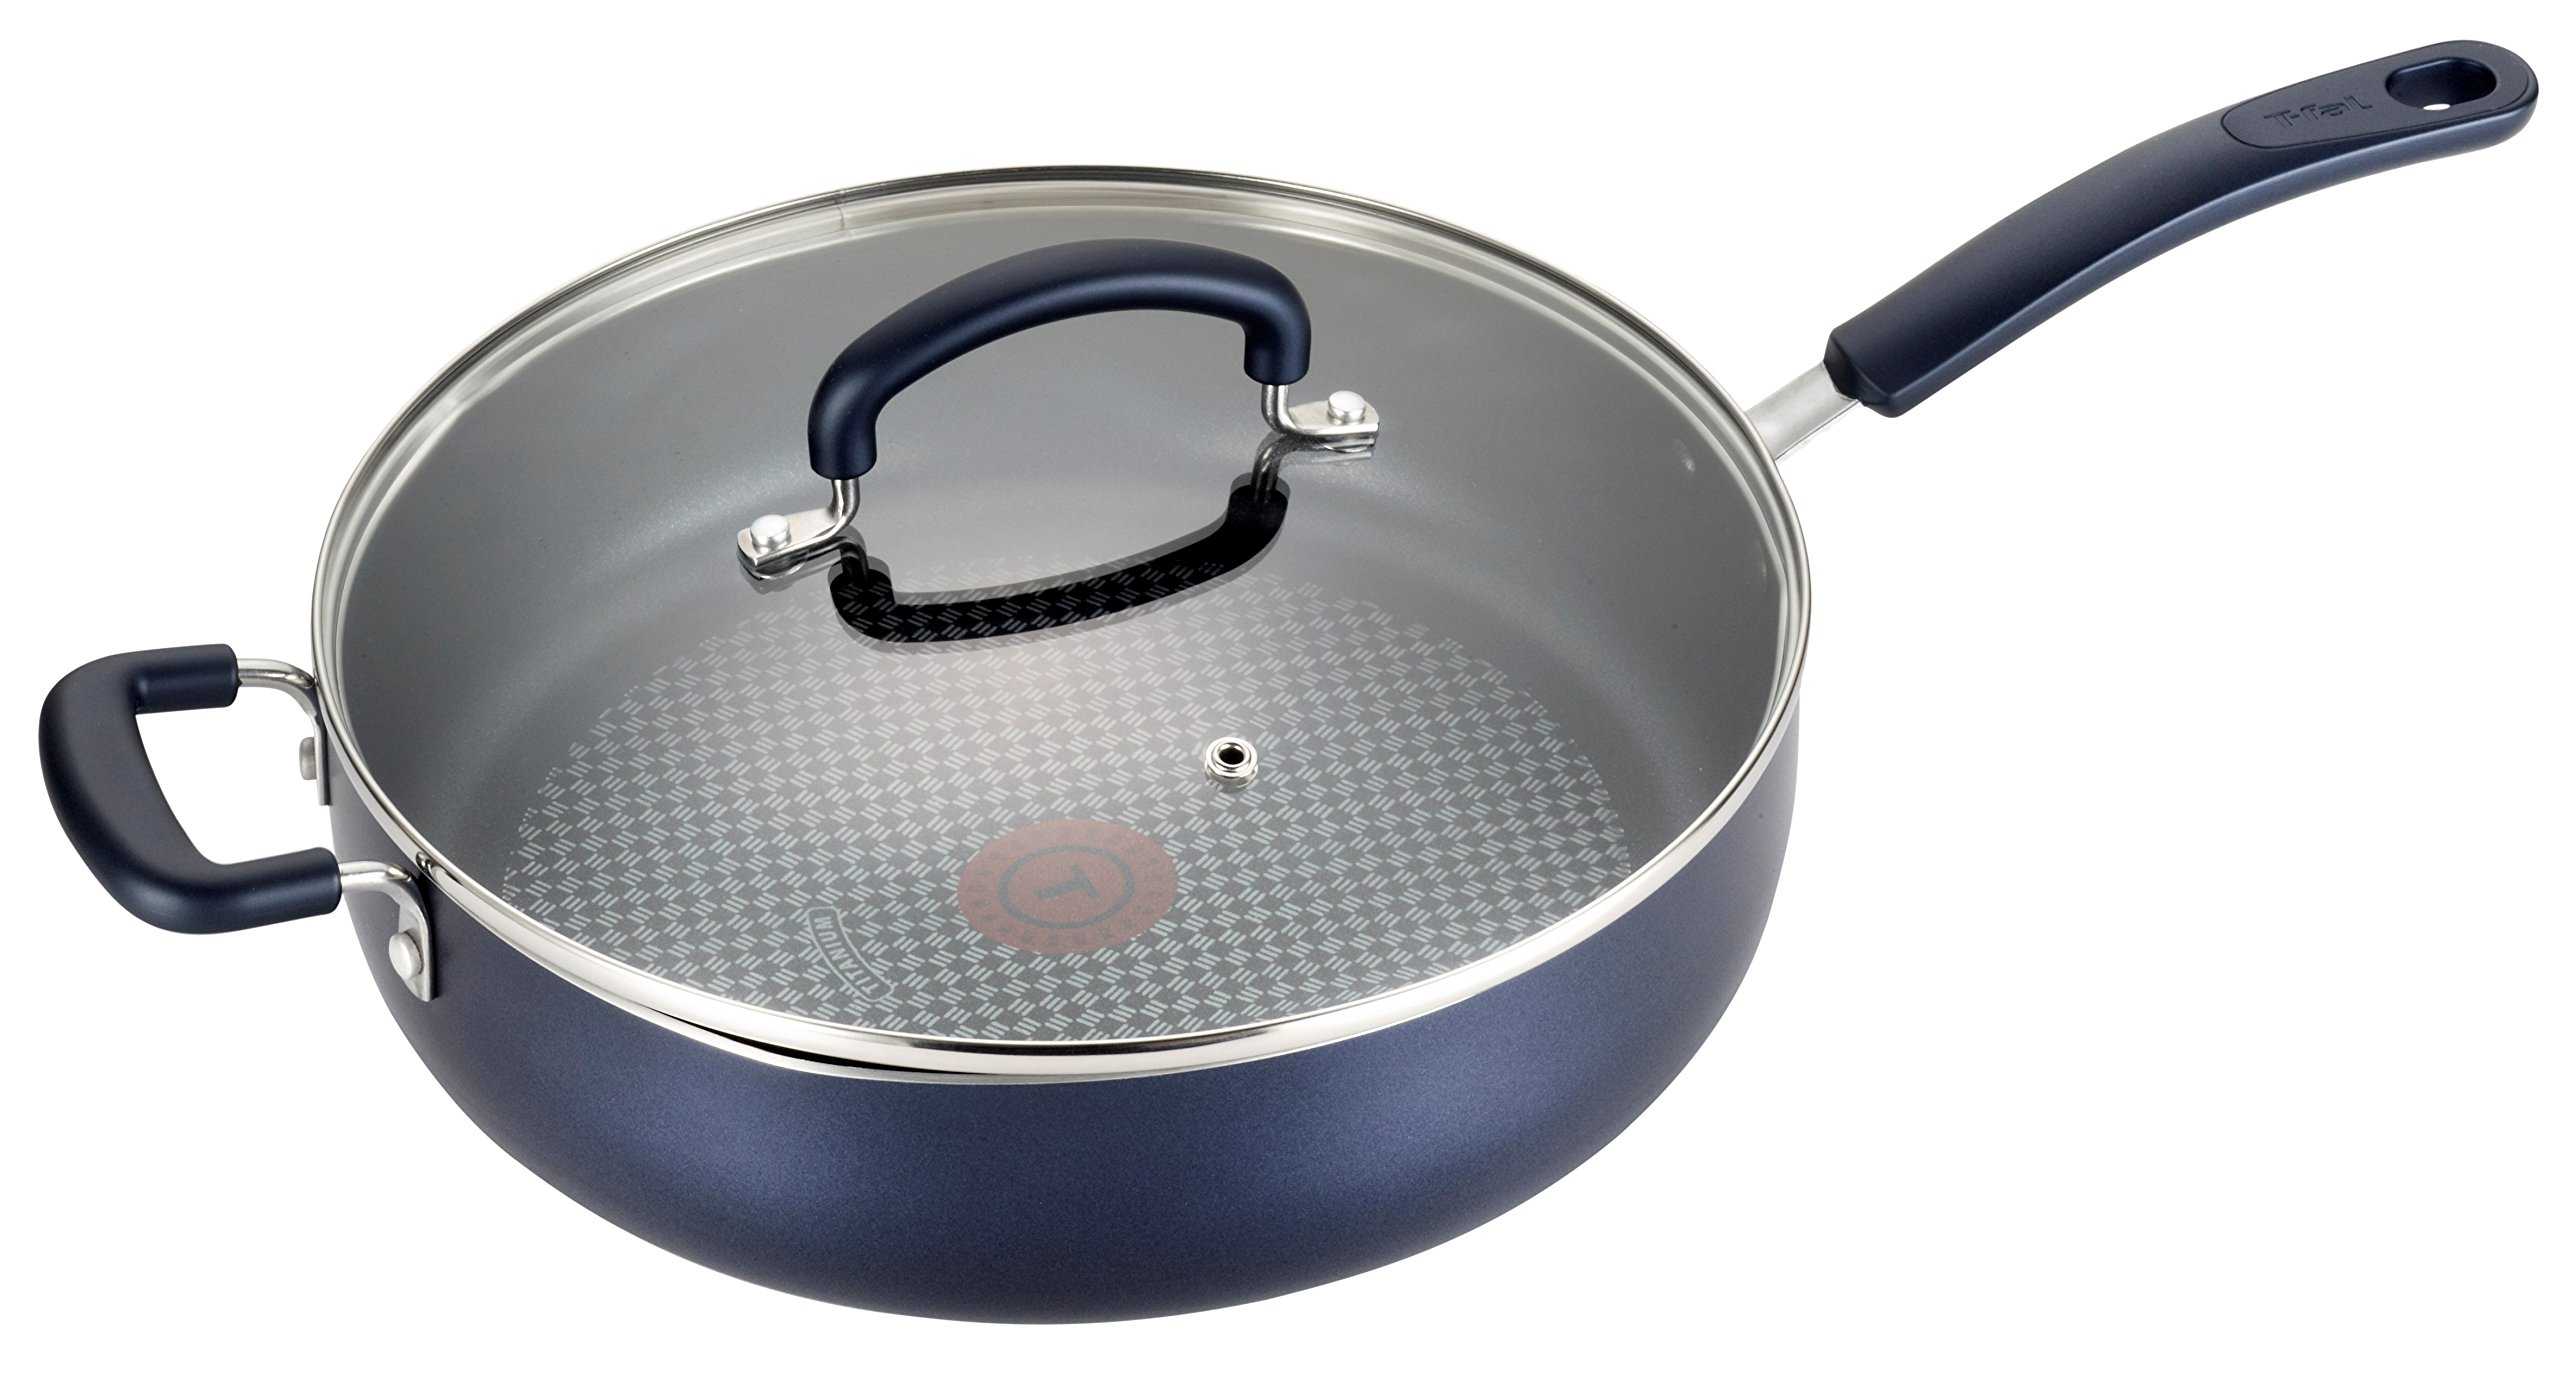 T-fal B12982 Color Luxe Hard Titanium Nonstick Thermo-Spot Dishwasher Safe PFOA Free Saute Pan Jumbo Cooker Cookware, 5-Quart, Blue